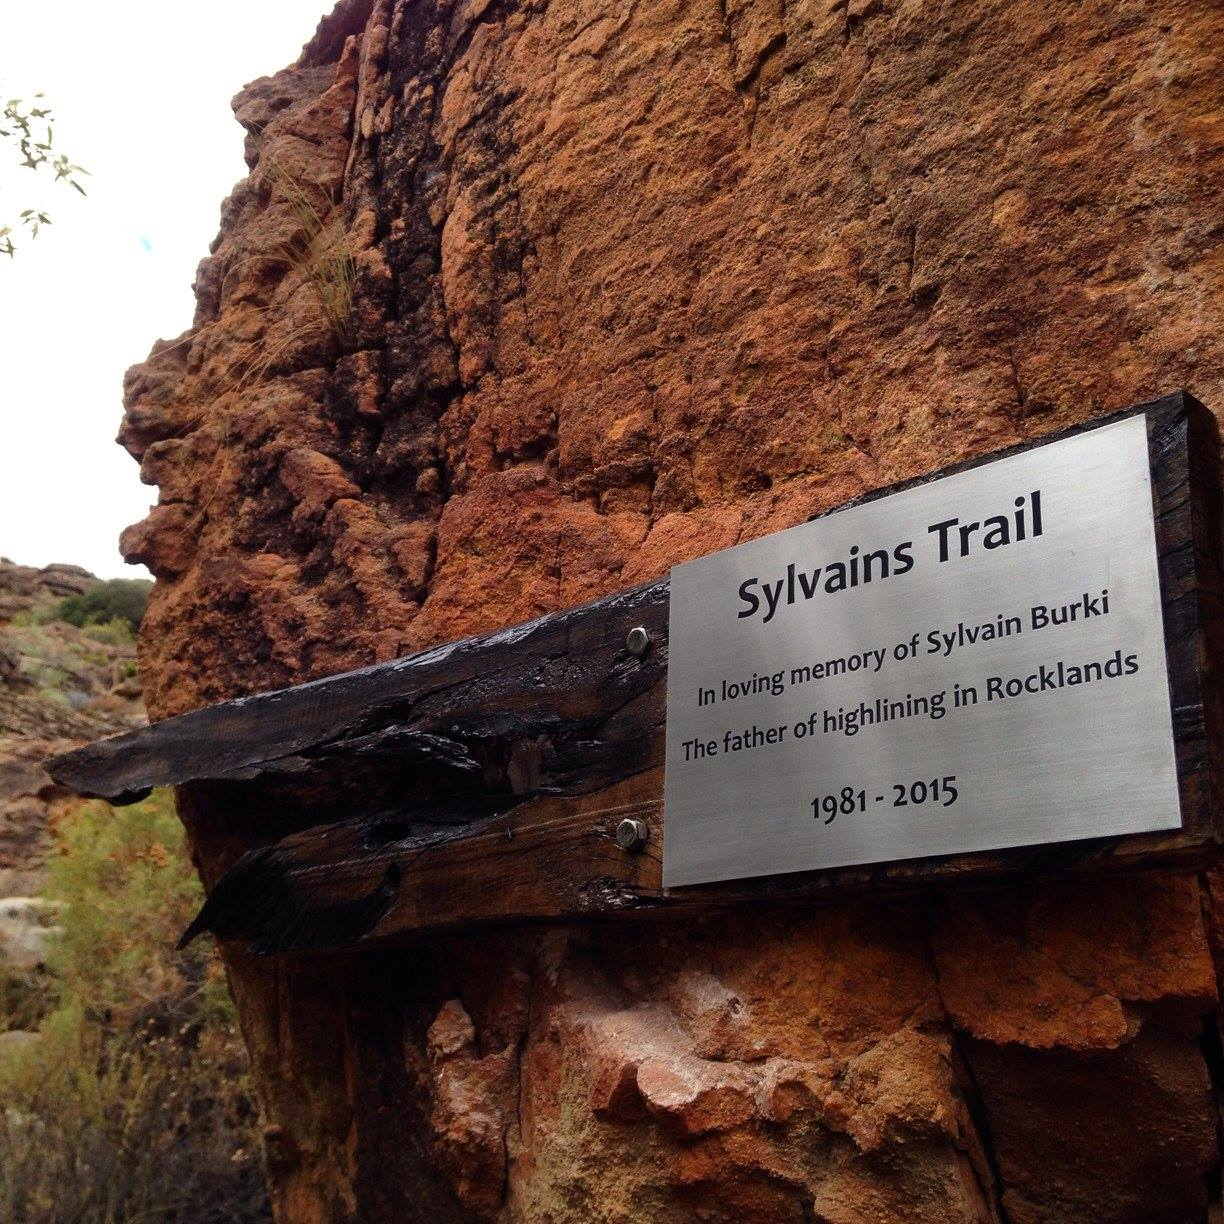 Beautiful plaque added by De Pakhuys owner Thys Kruger - Donna Kisogloo